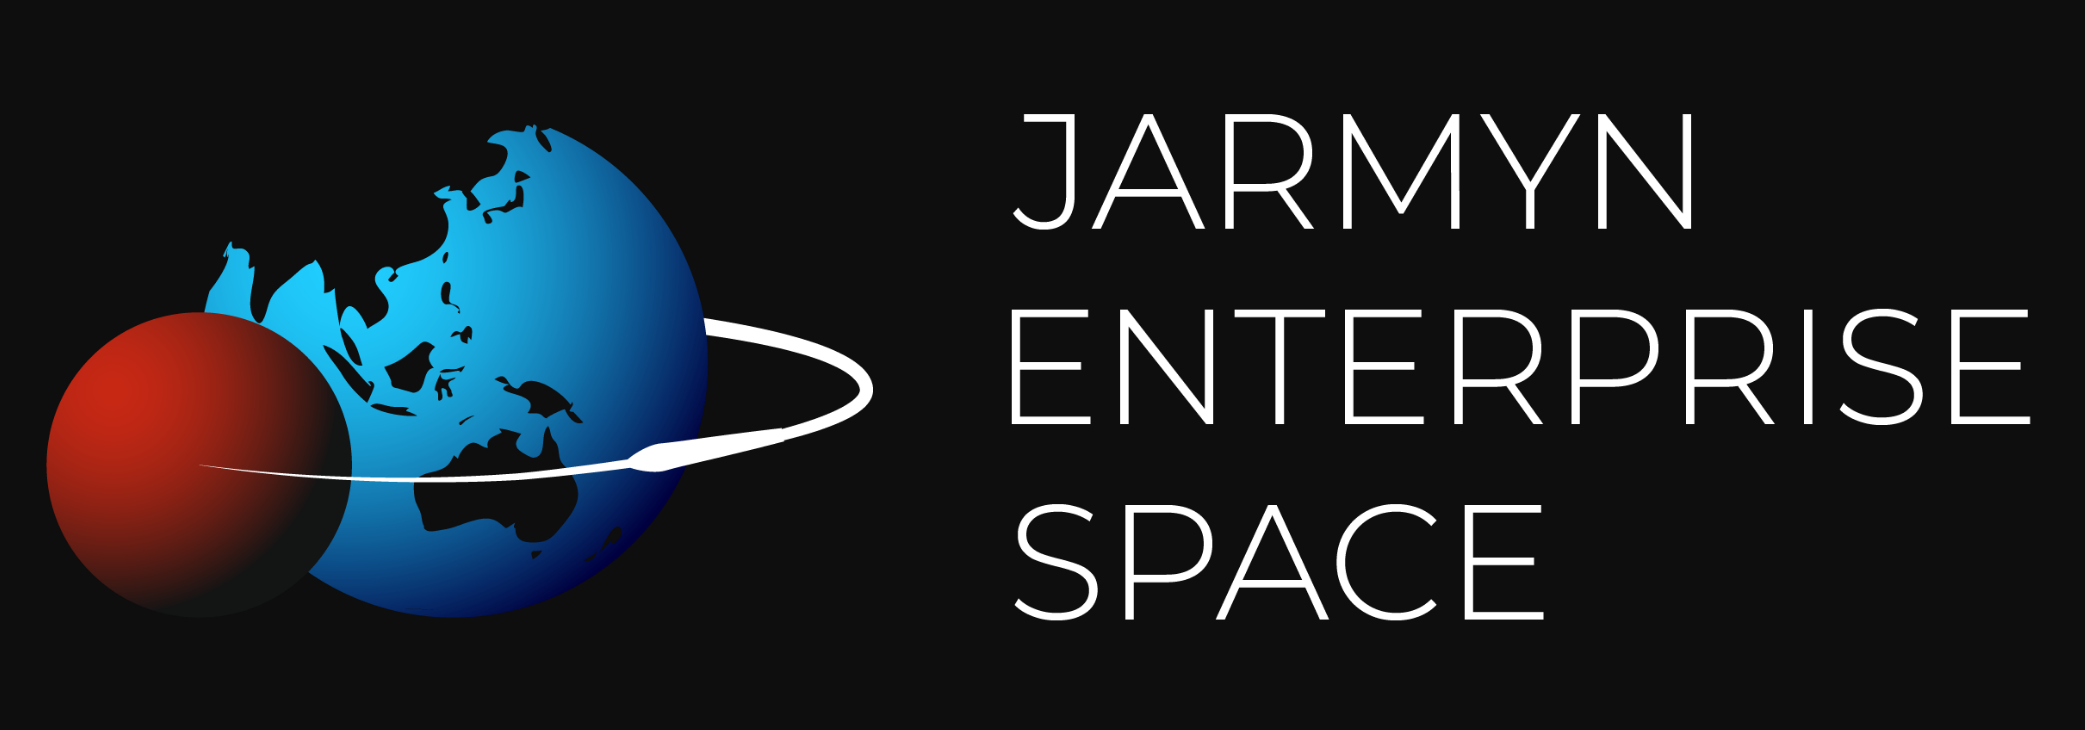 Jarmyn Enterprise Space logo